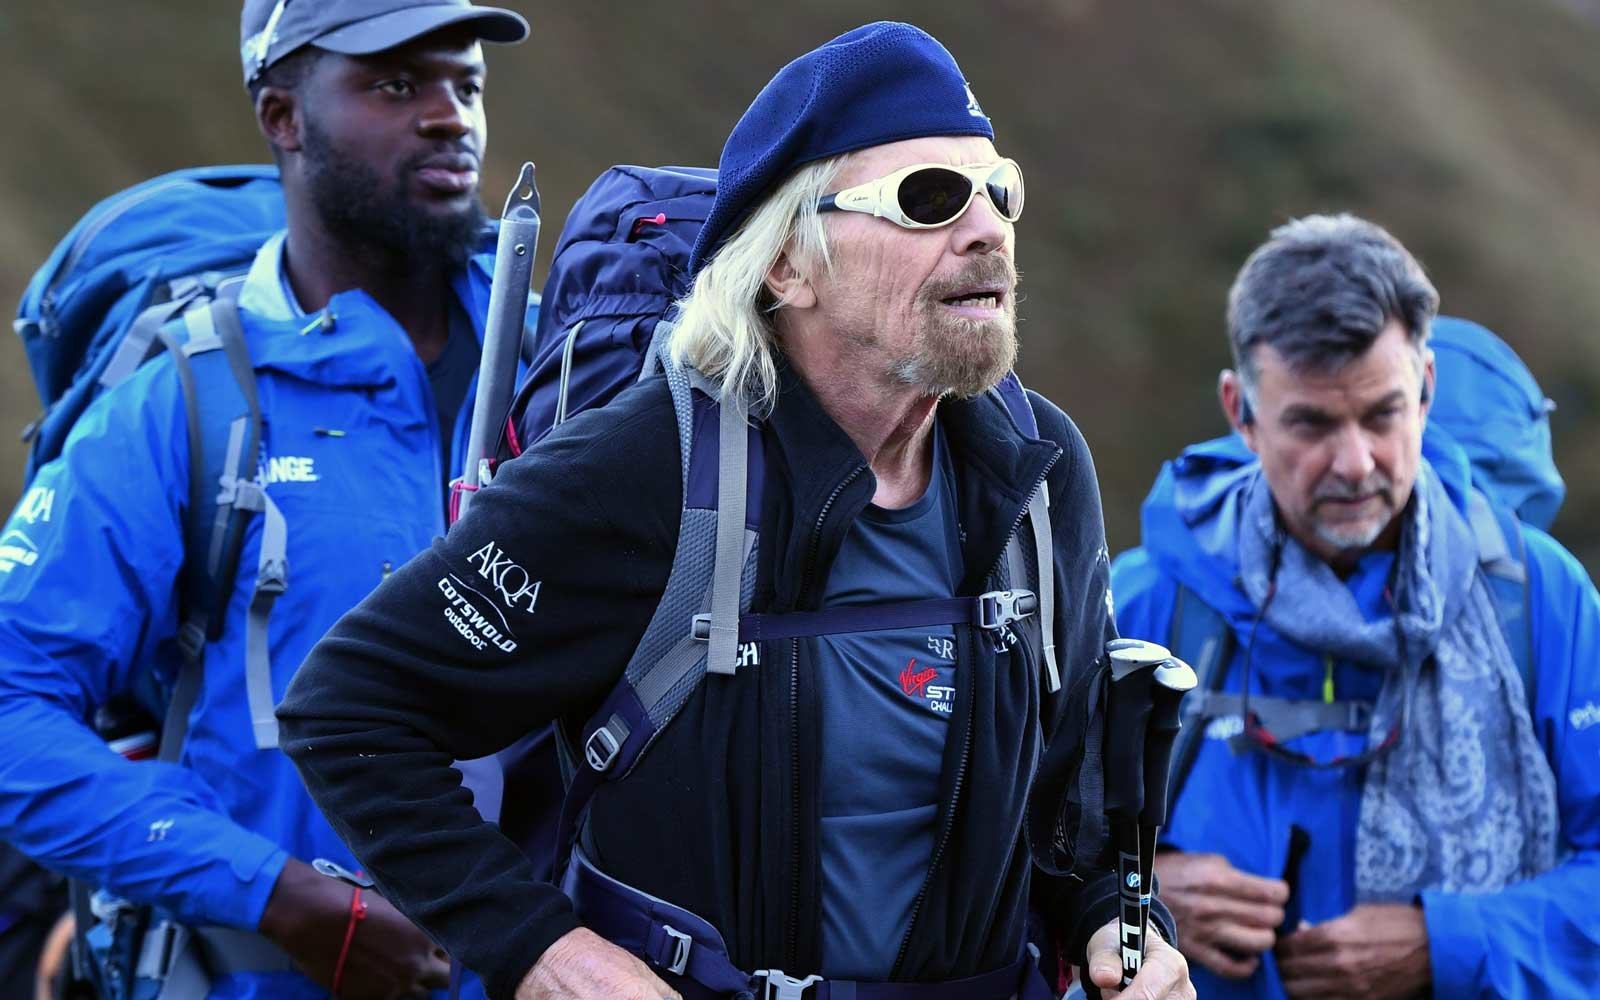 Sir Richard Branson (centre) and former gang leader Karl Lokko (left) as they climb Mont Blanc in the Alps on the final stage of the Virgin Strive Challenge.